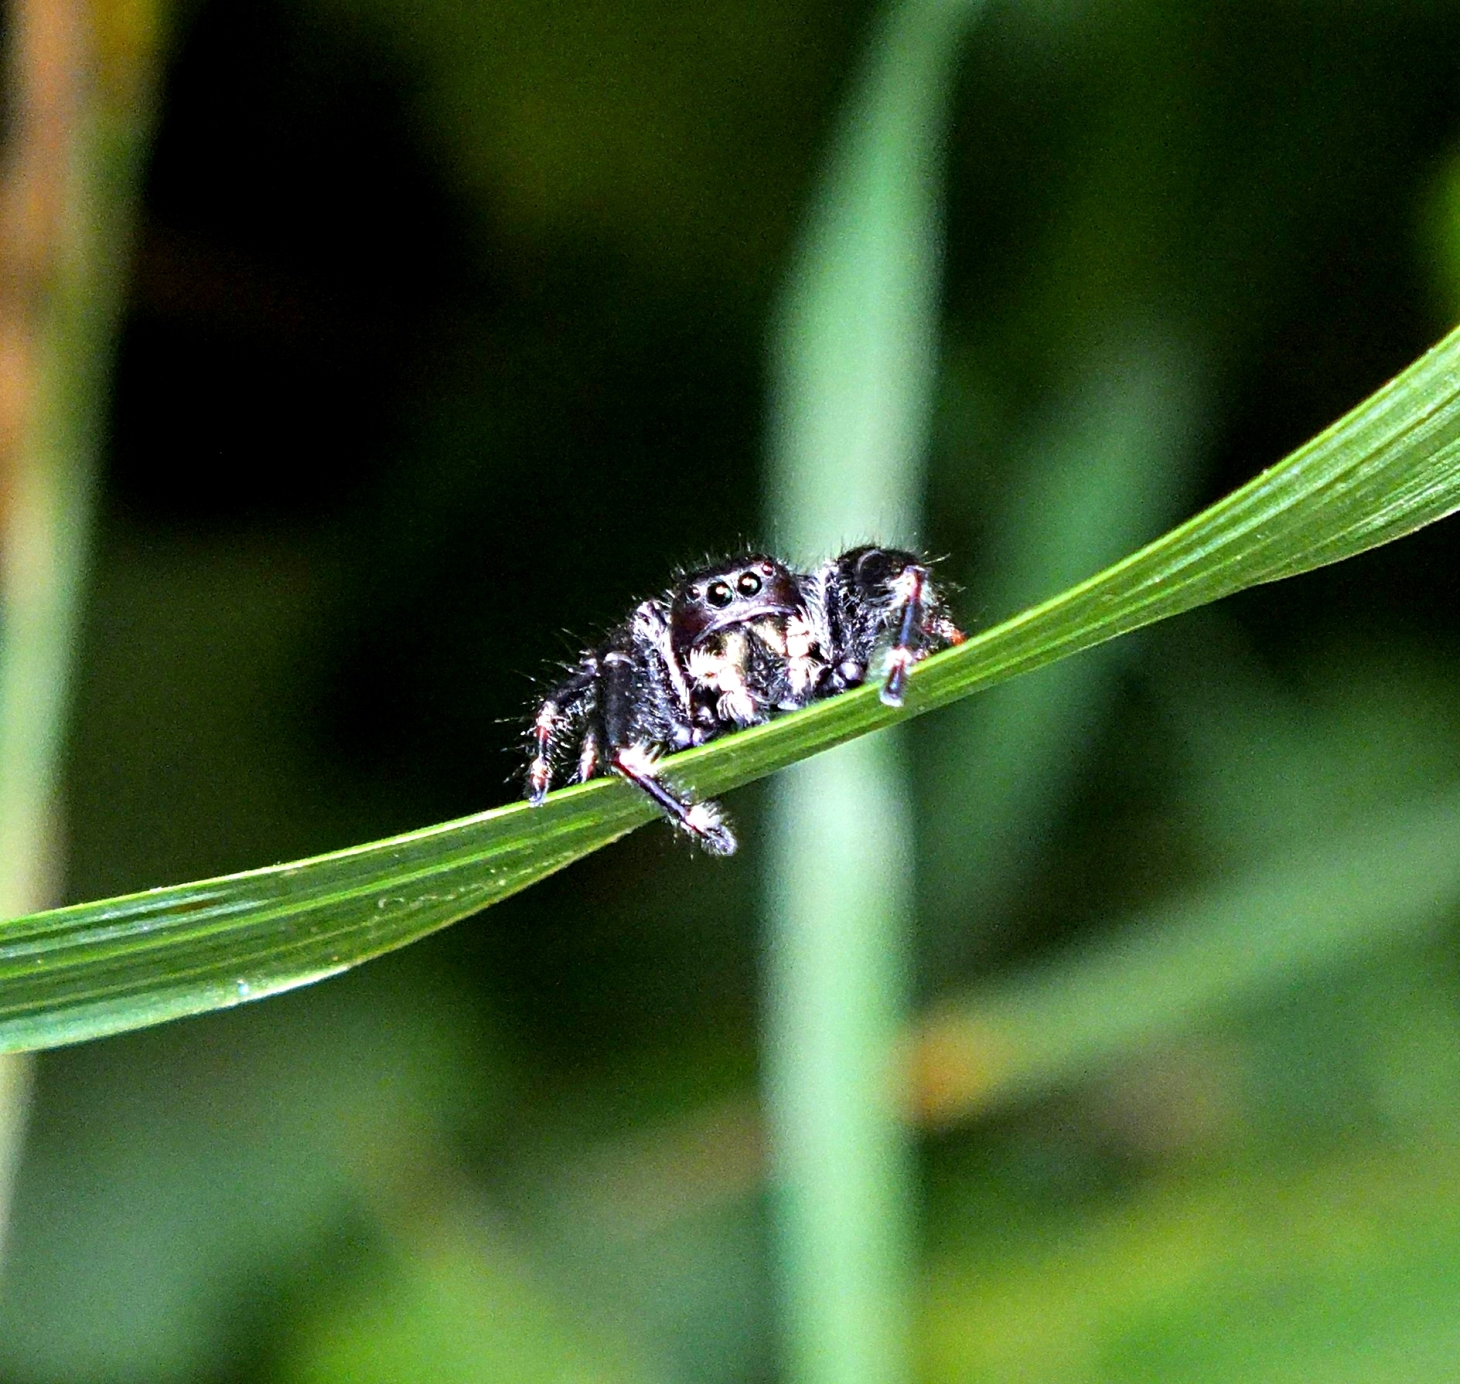 Tightrope climber! (Jumping Spider) (2) Photo by Thomas Peace 2014